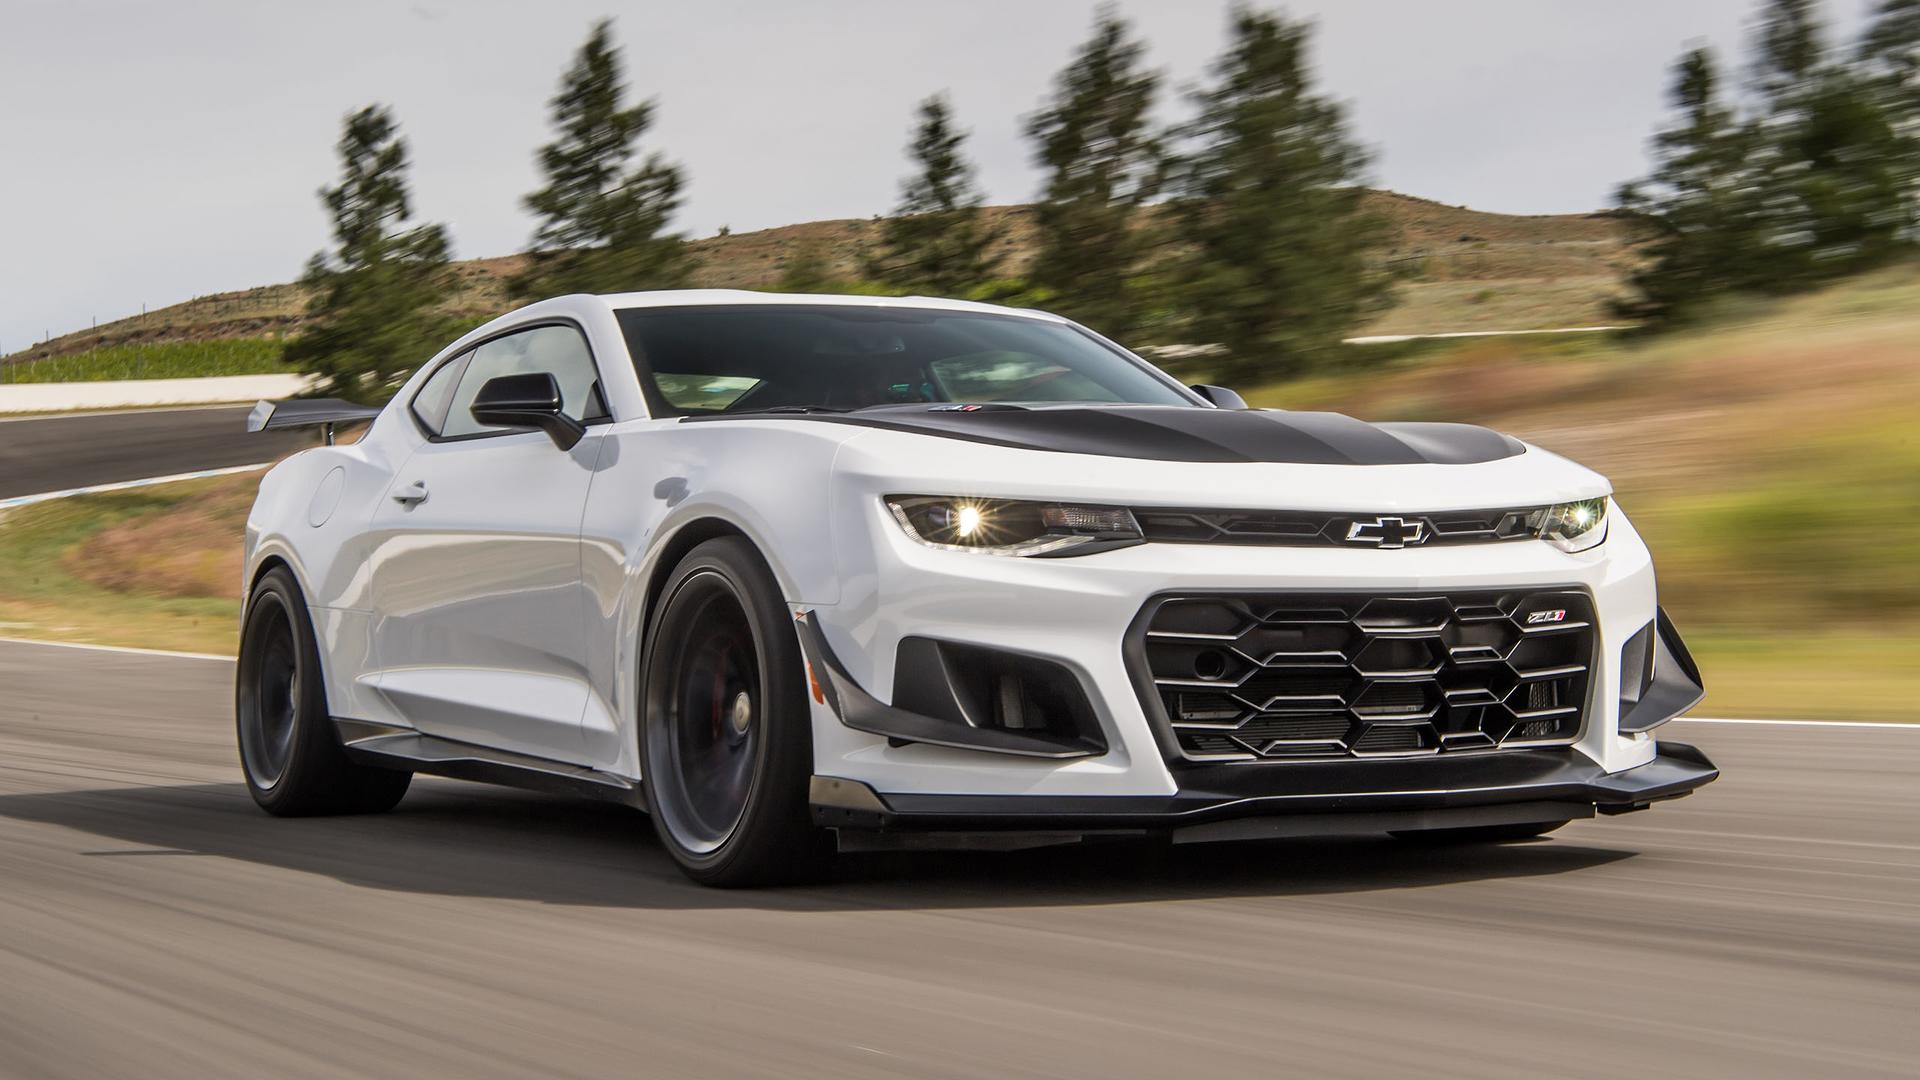 Chevy Camaro Chief Engineer Wants A Sub 7-Minute Nürburgring Lap